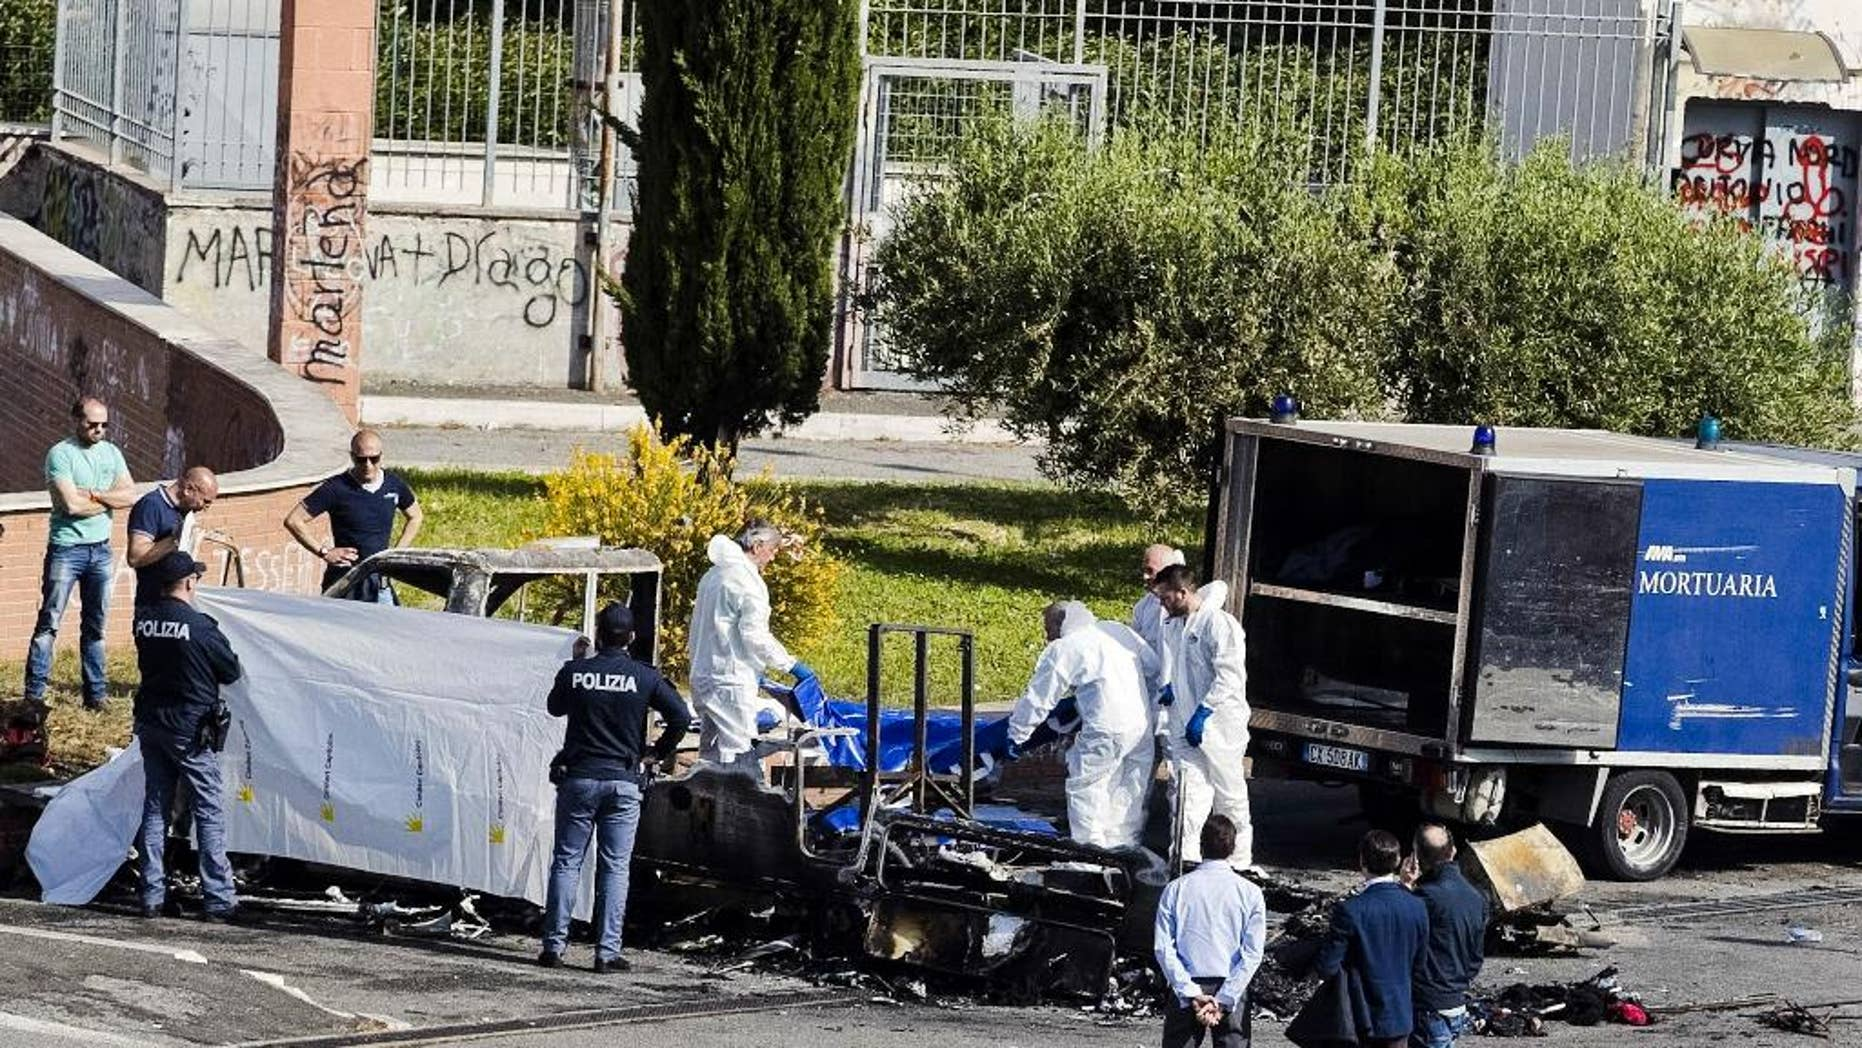 Forensic police recover a body from the a camper where three sister died, in Rome, Wednesday, May 10, 2017, when it burst into flames as they slept, in what news reports said might have been an intentional attack aimed at Roma, also known as Gypsies. Prosecutors have opened an arson investigation after surviving family members reported having received threats from local residents in recent days and another camper was torched last week nearby. The sisters aged 4, 8 and 20, were Roma and other family members who were in the camper at the time managed to escape. (Massimo Percossi/ANSA via AP)